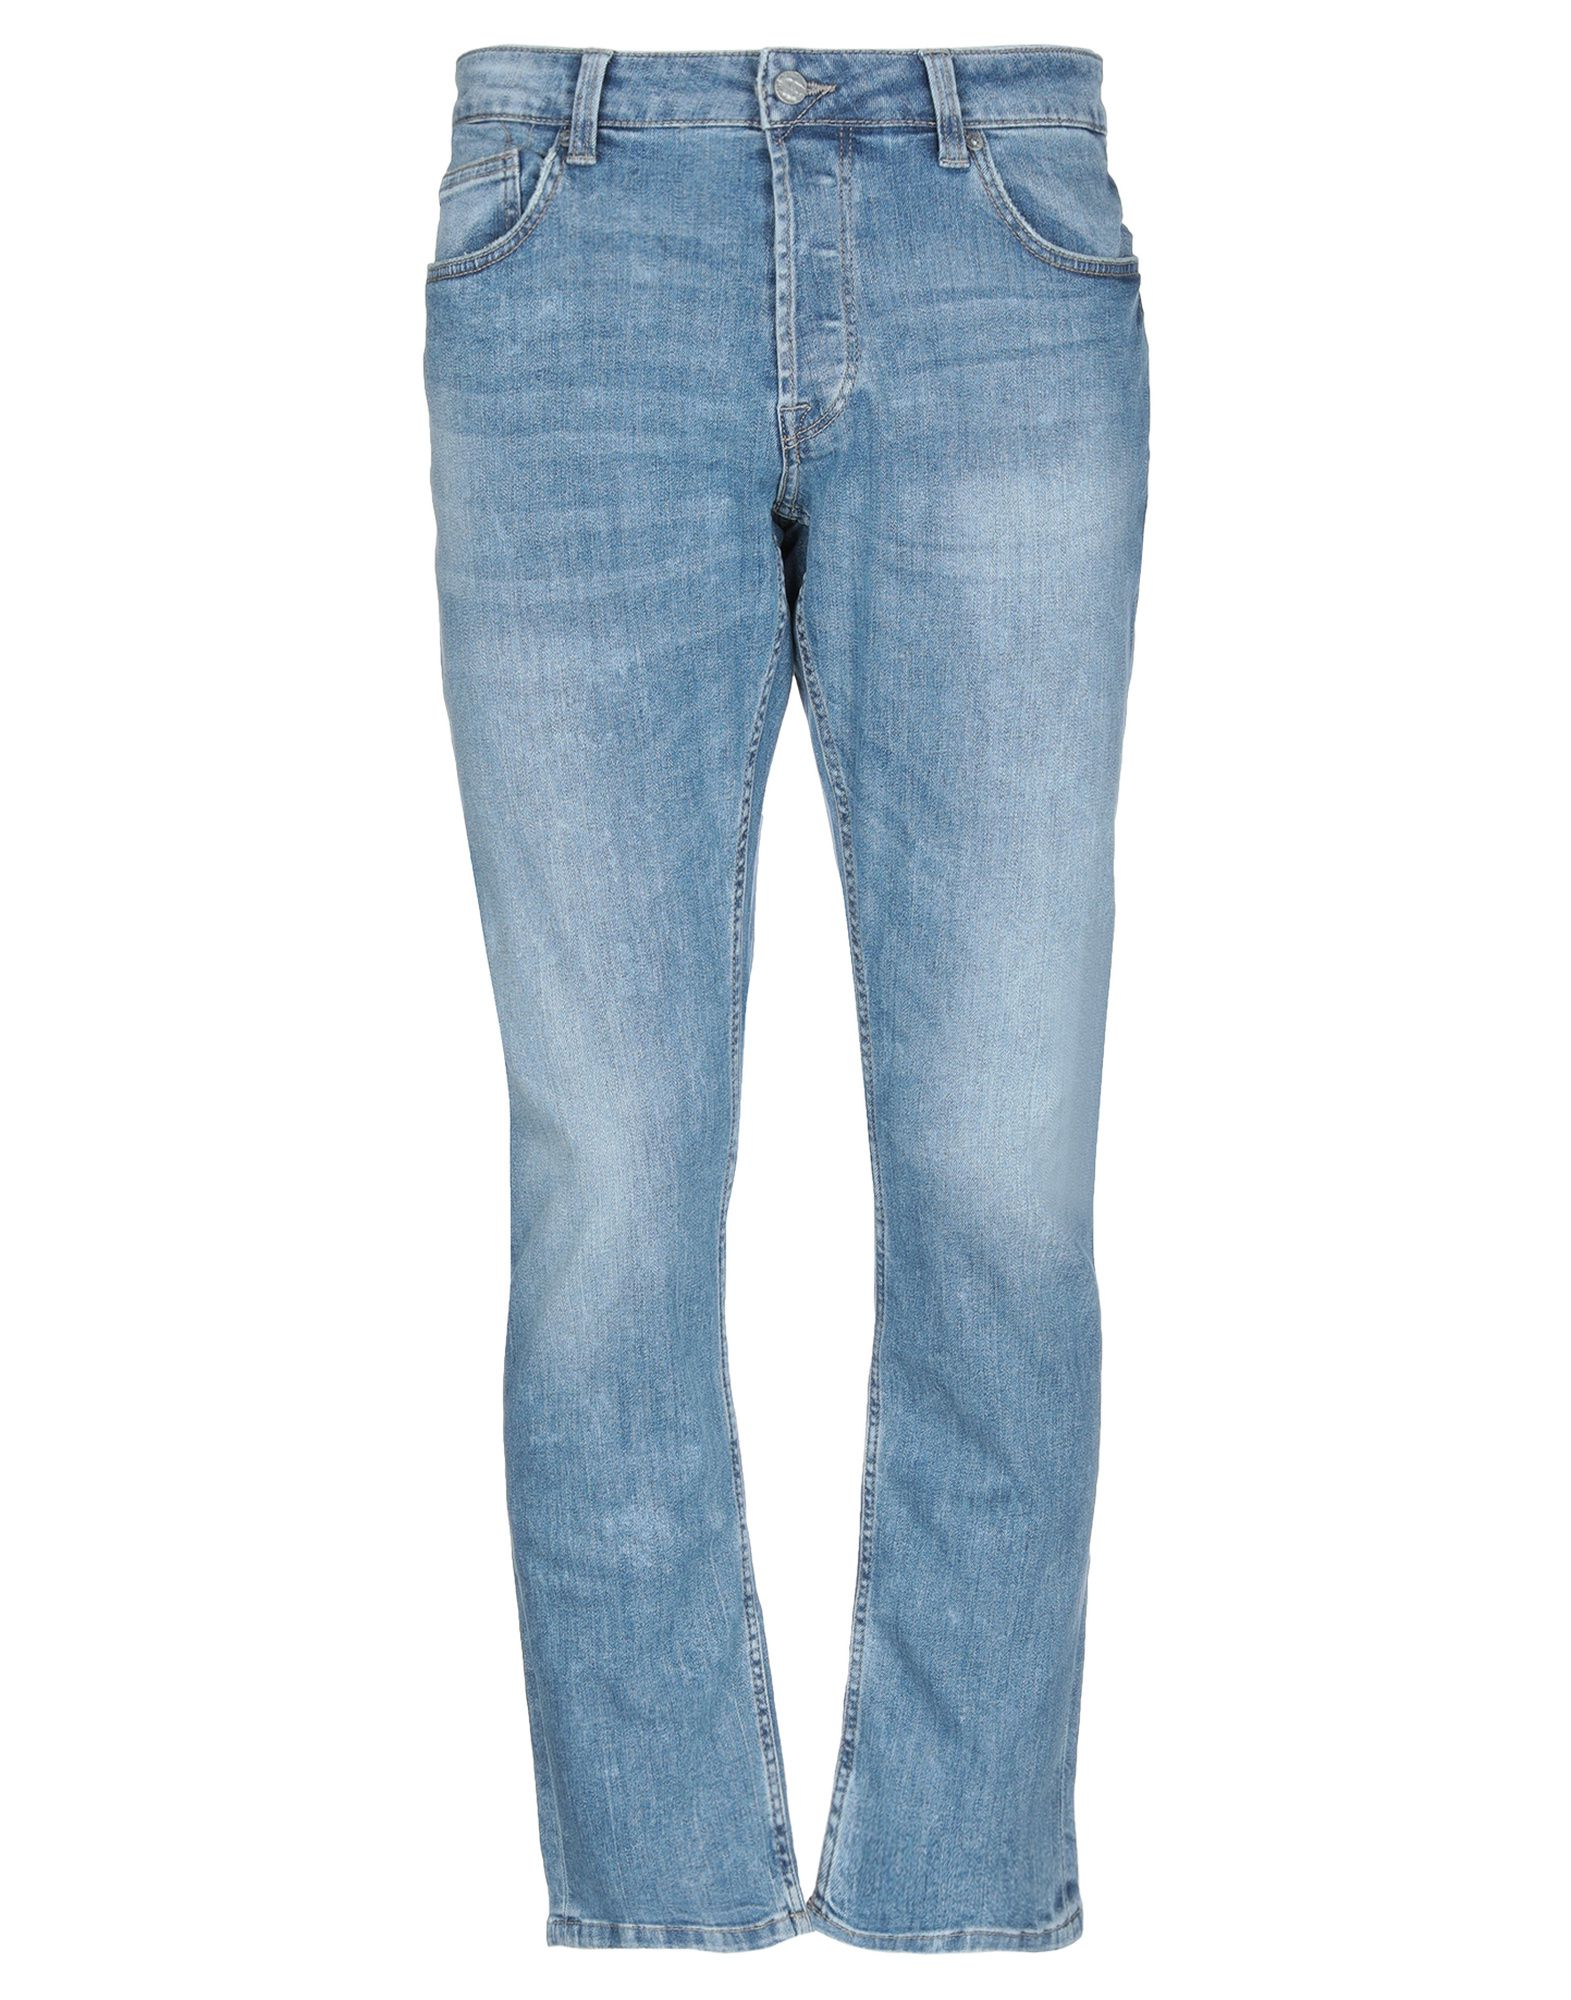 Pantaloni Jeans Only & Sons Sons uomo - 42729366PU